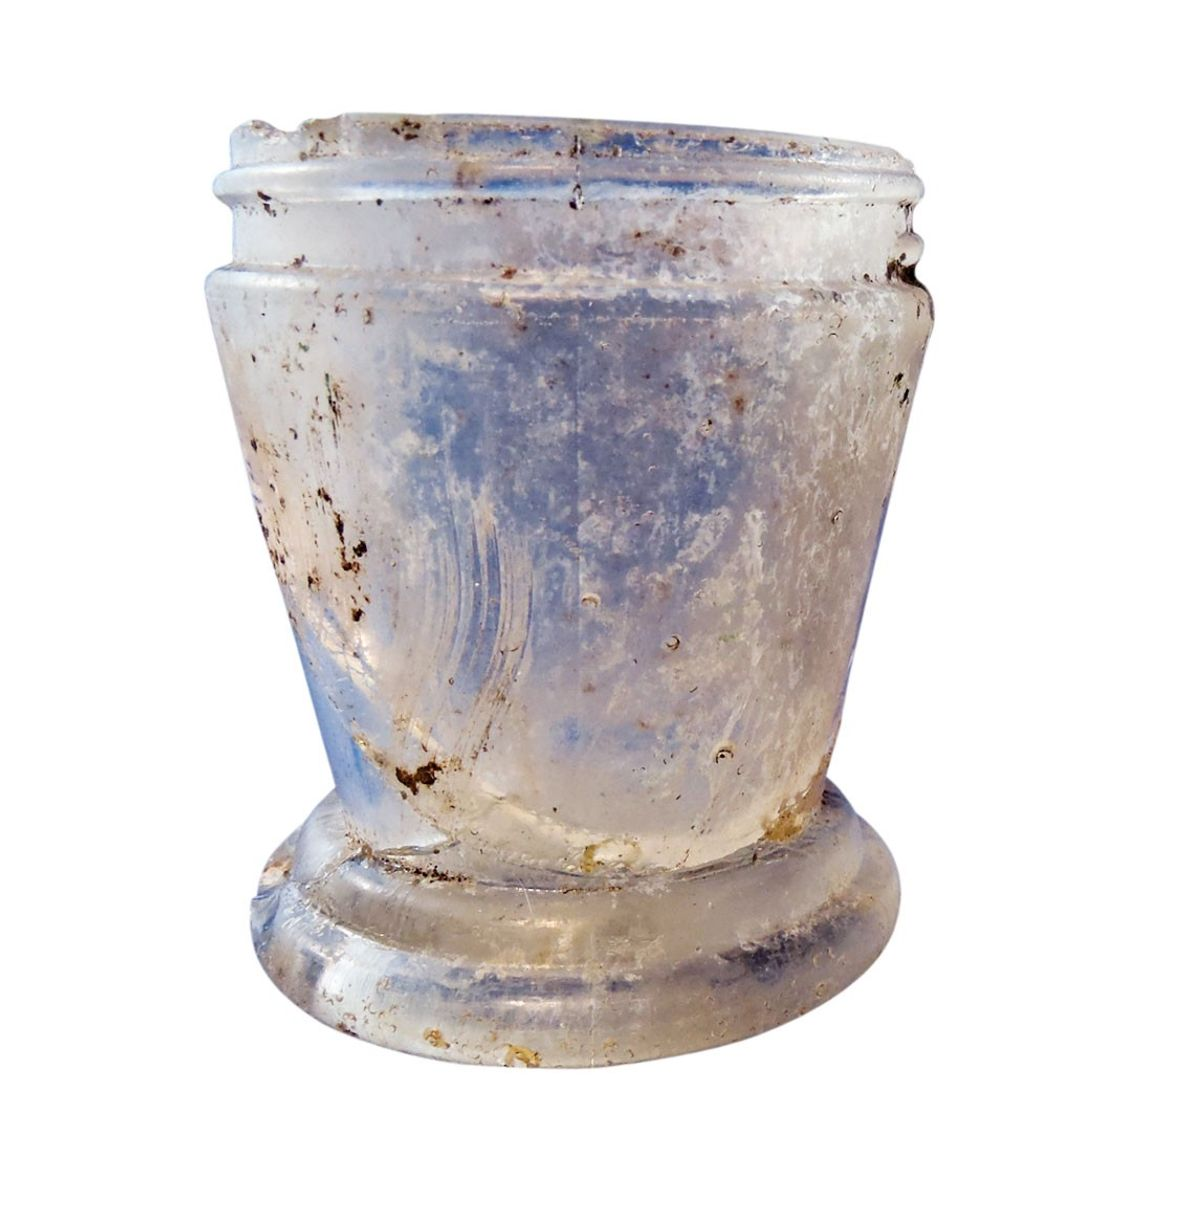 Glass jar believed to have held freckle cream.